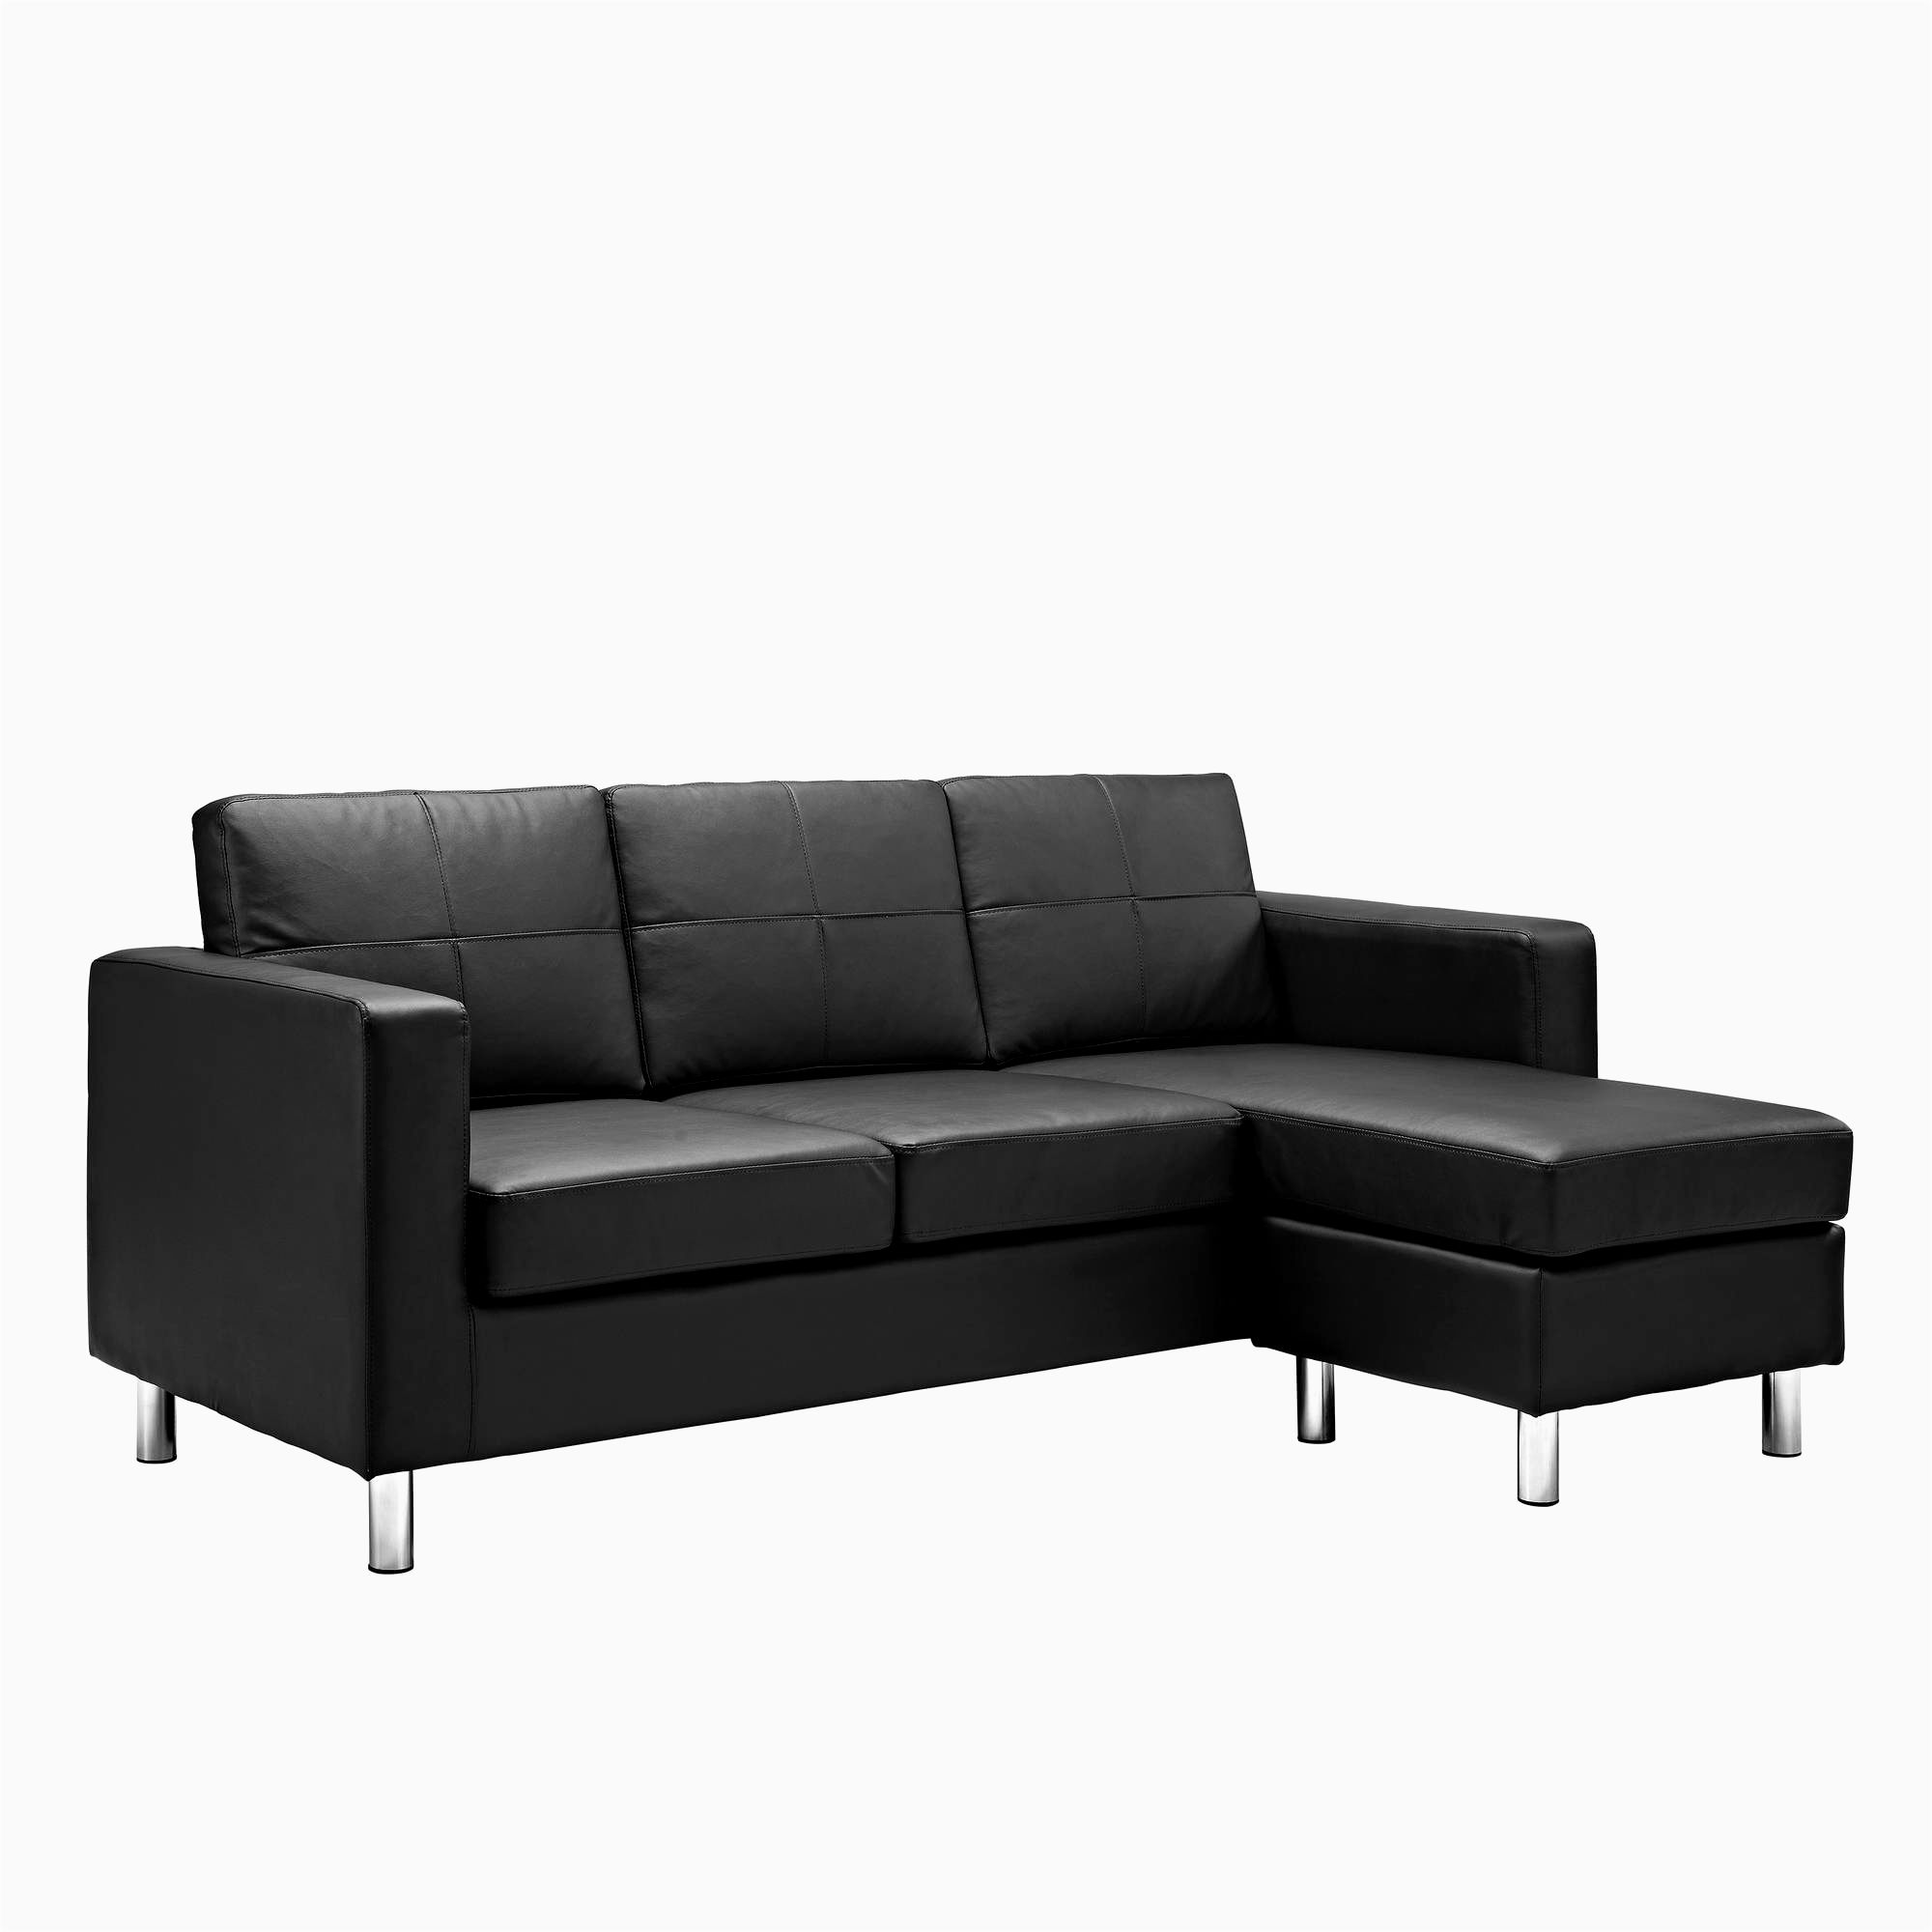 lovely nice sofa beds photo-Fantastic Nice sofa Beds Collection